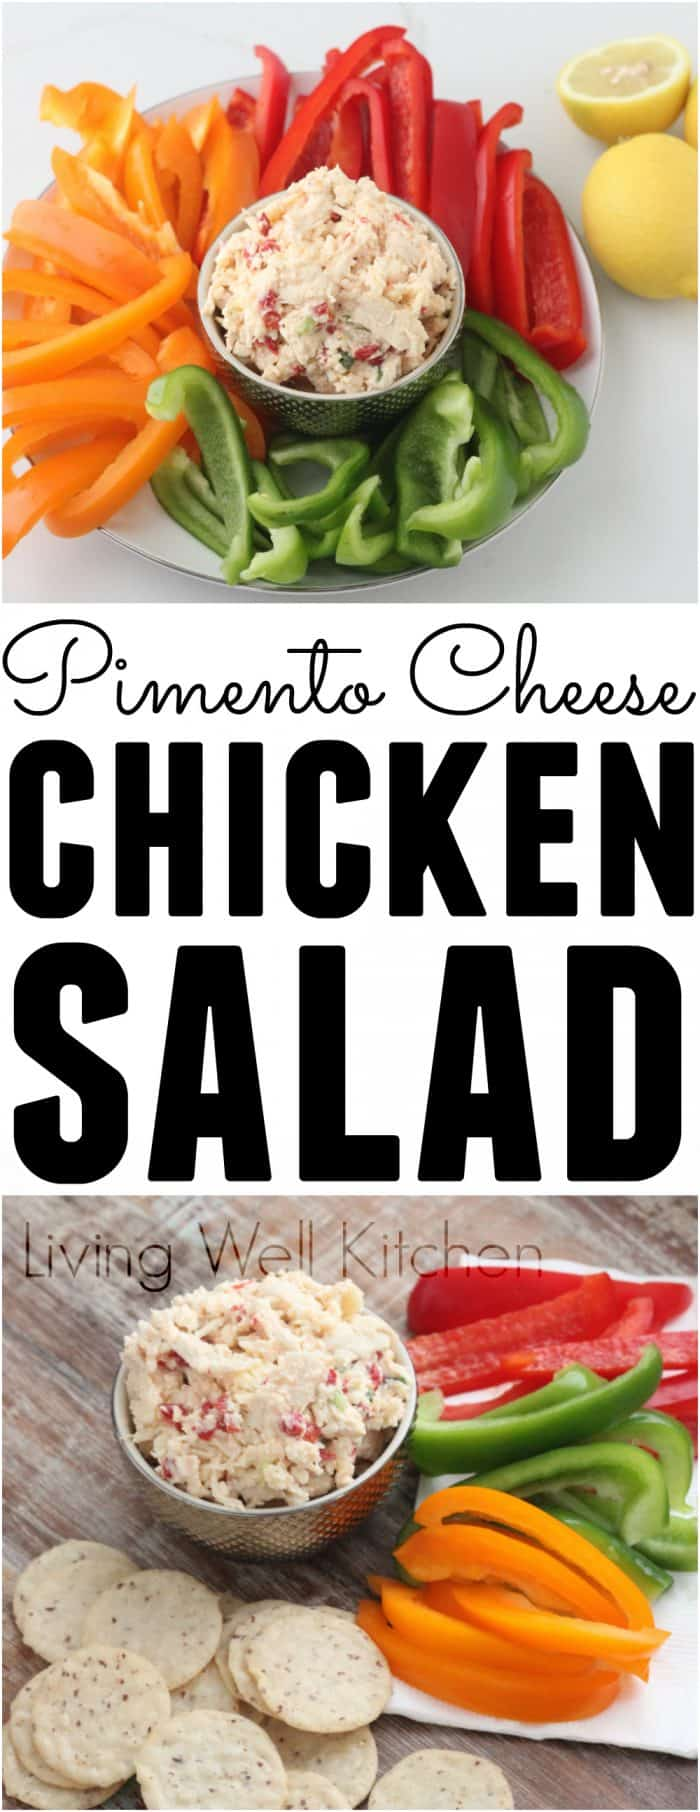 Two refrigerator staples combine to make this nourishing & tasty snack/salad/lunch delight. Filled with protein, Pimento Cheese Chicken Salad will keep you full without much effort in the cooking department.